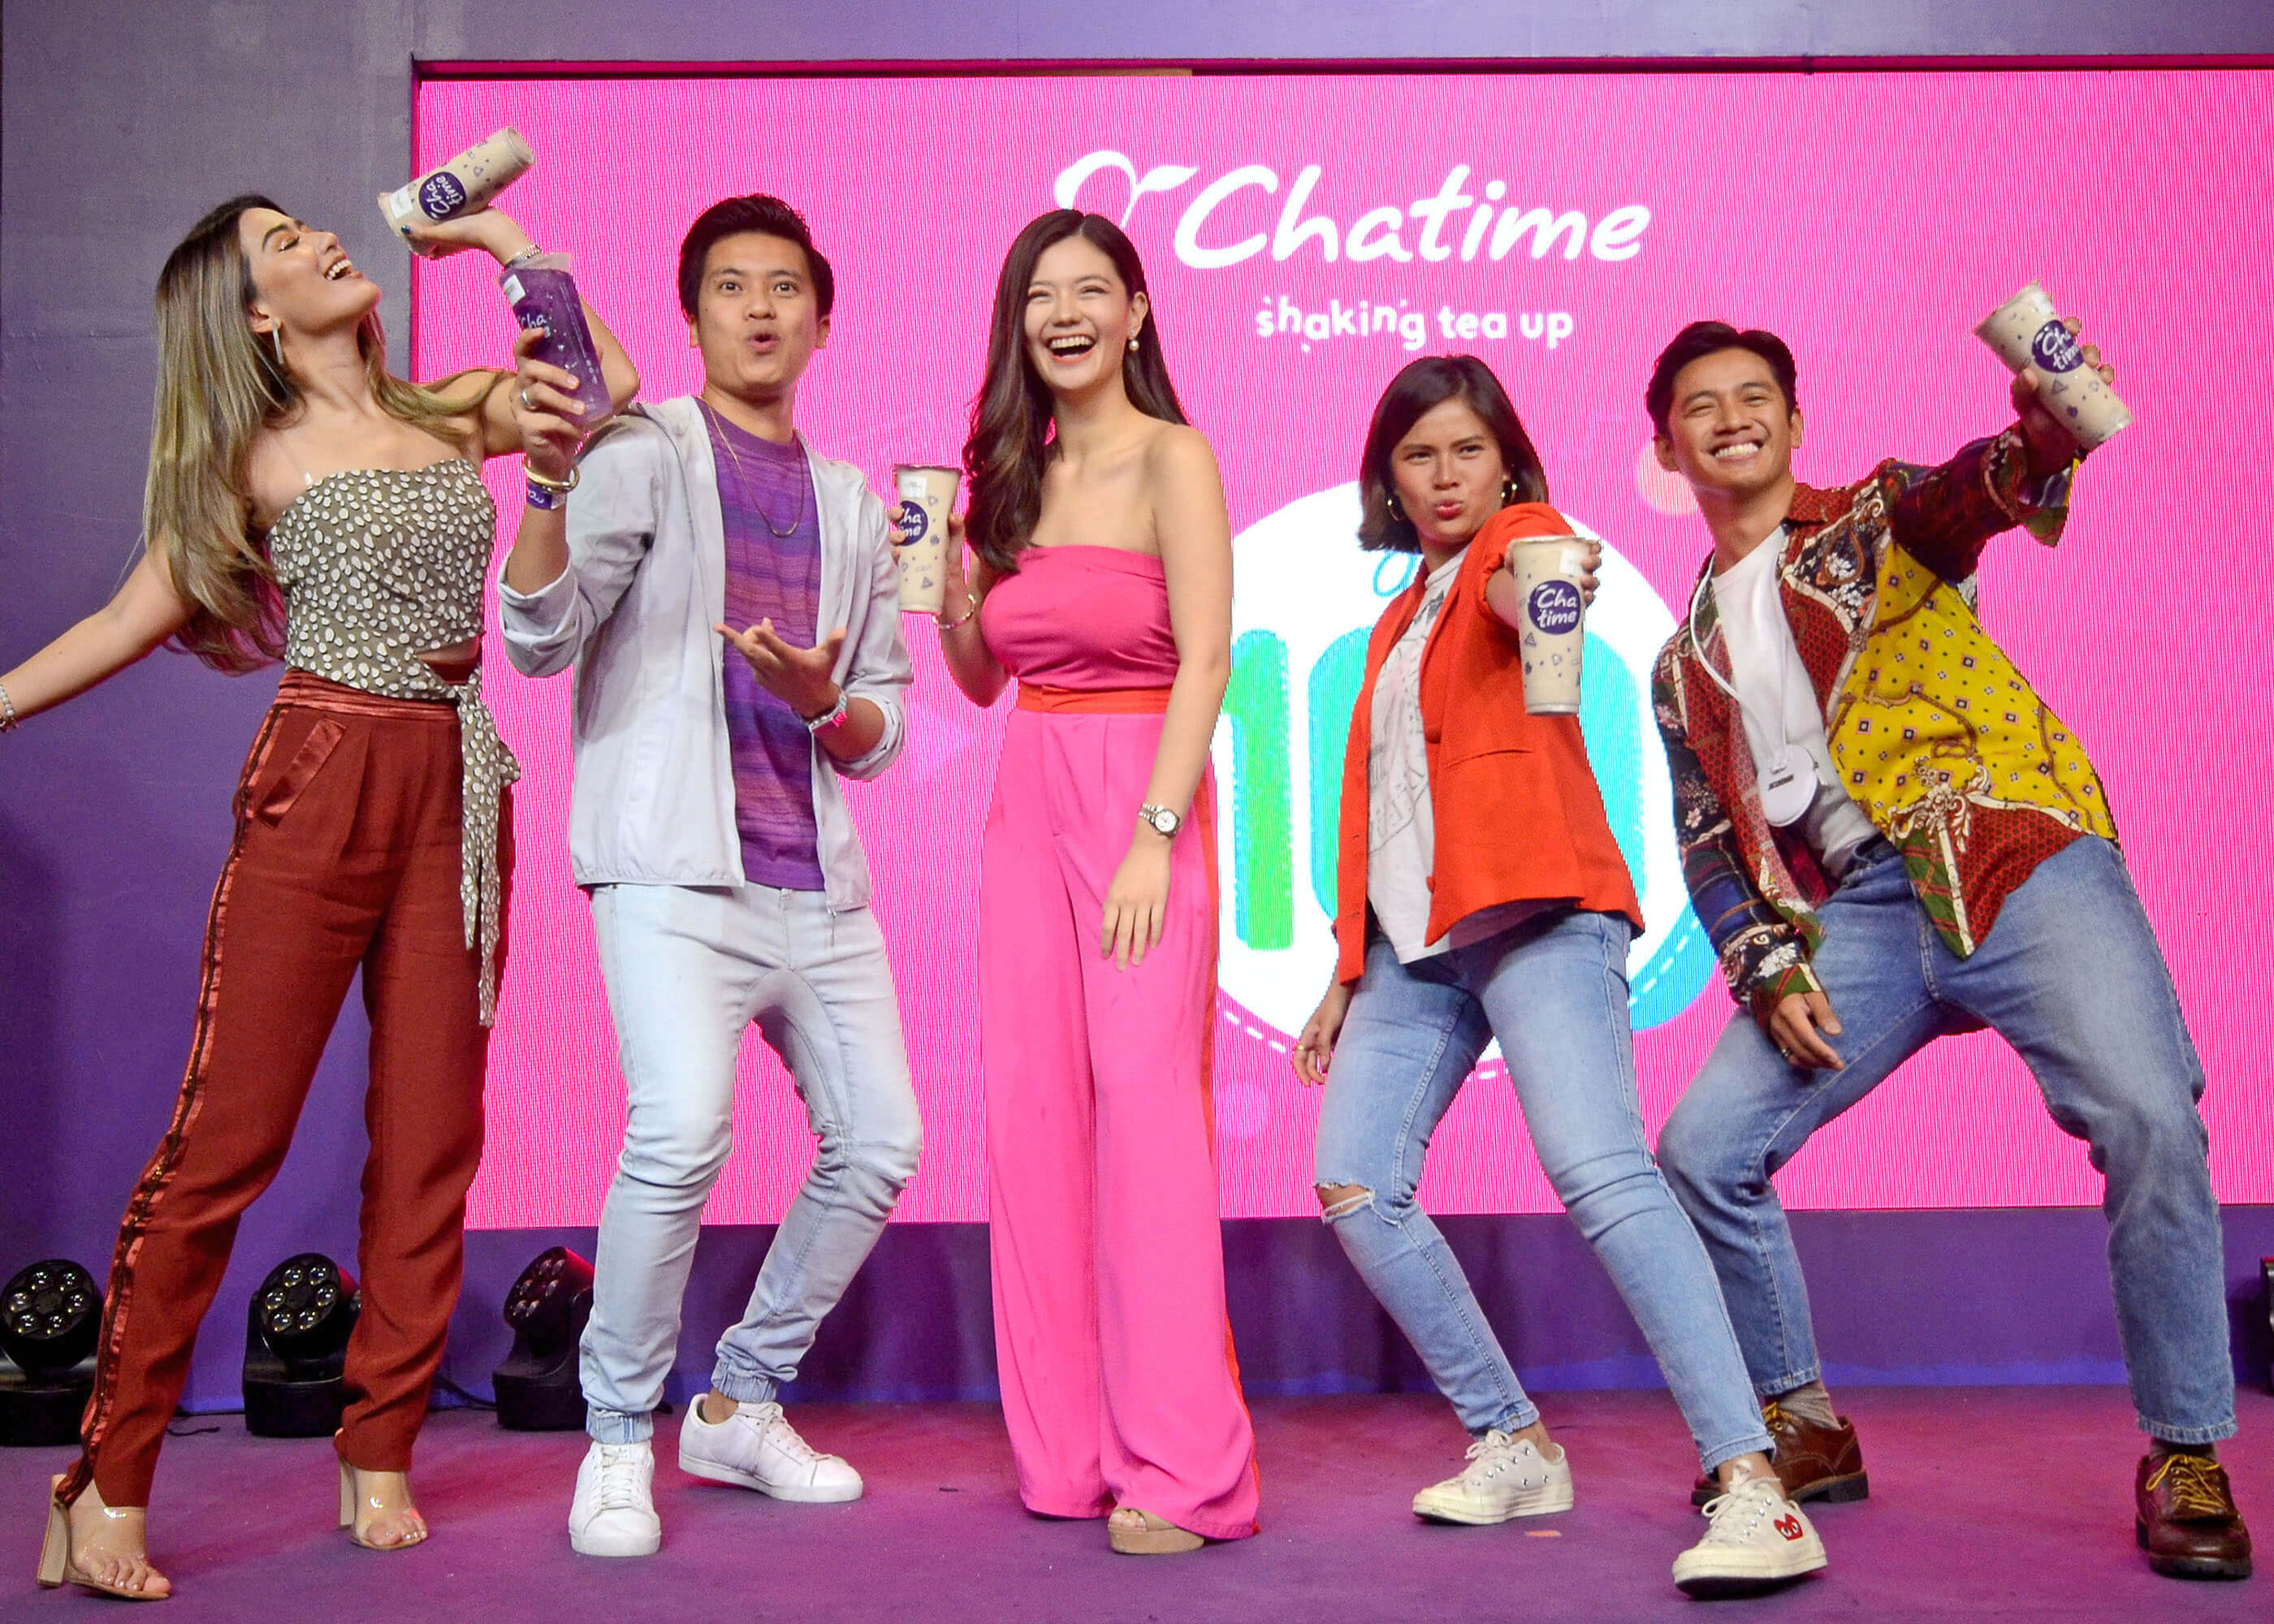 Chatime Shaking Up at 100! Chatime Philippines Opens 100th